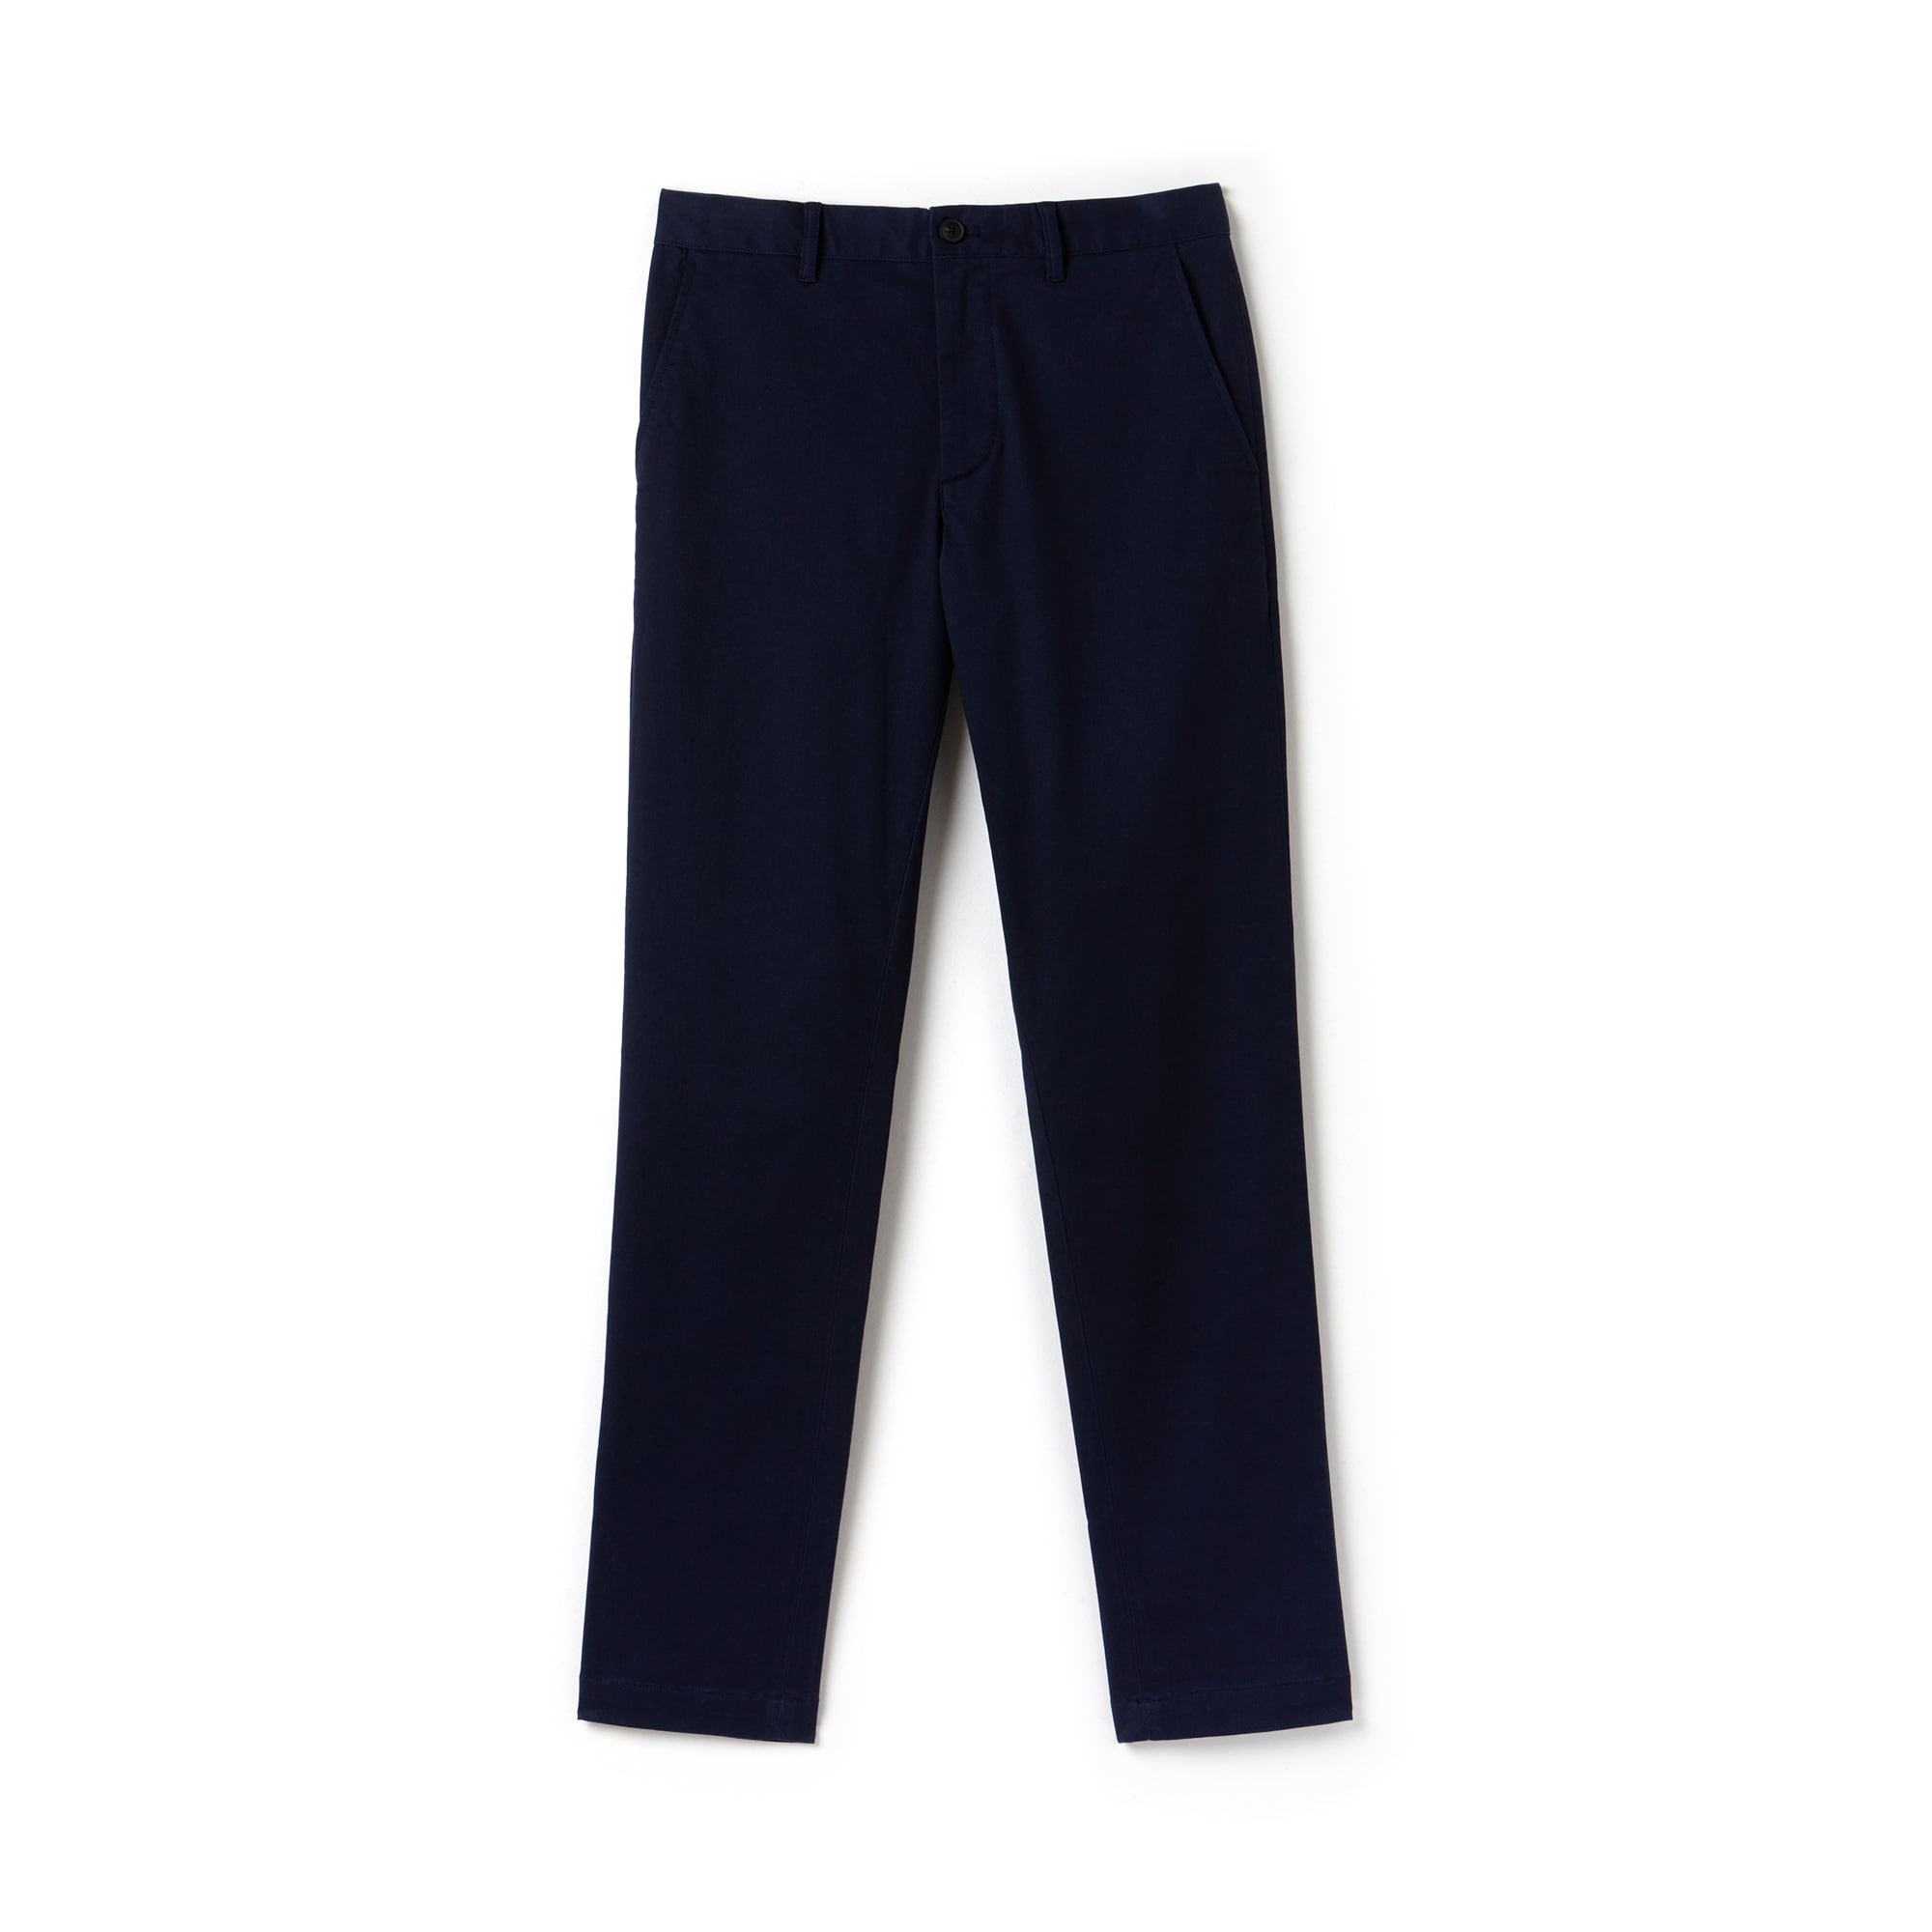 Pantaloni chino slim fit in gabardine stretch tinta unita